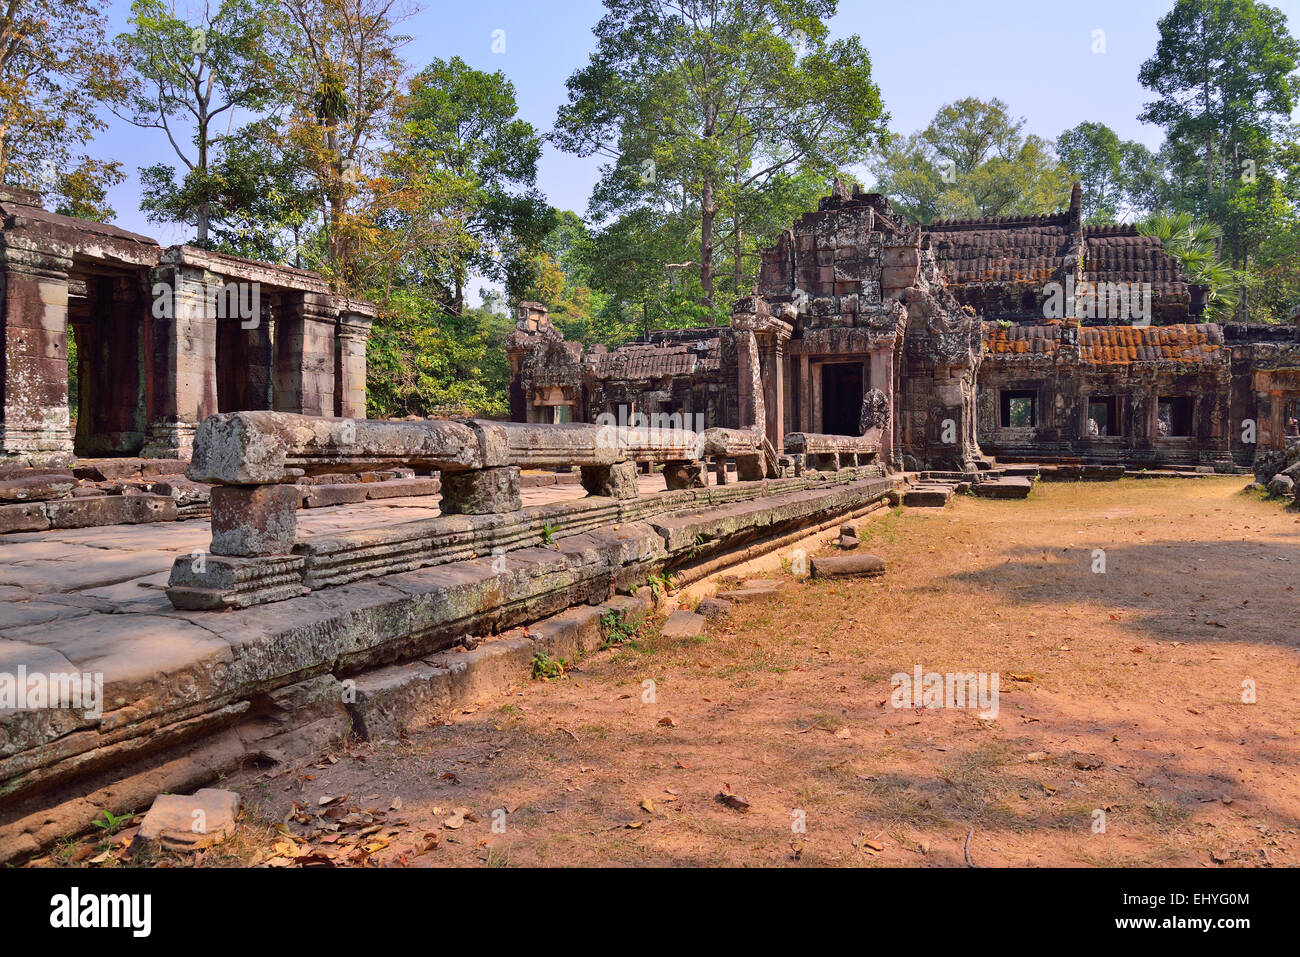 Banteay Kdei Temple in Siem Reap, Cambodia. No people in the picture with blue sky. - Stock Image